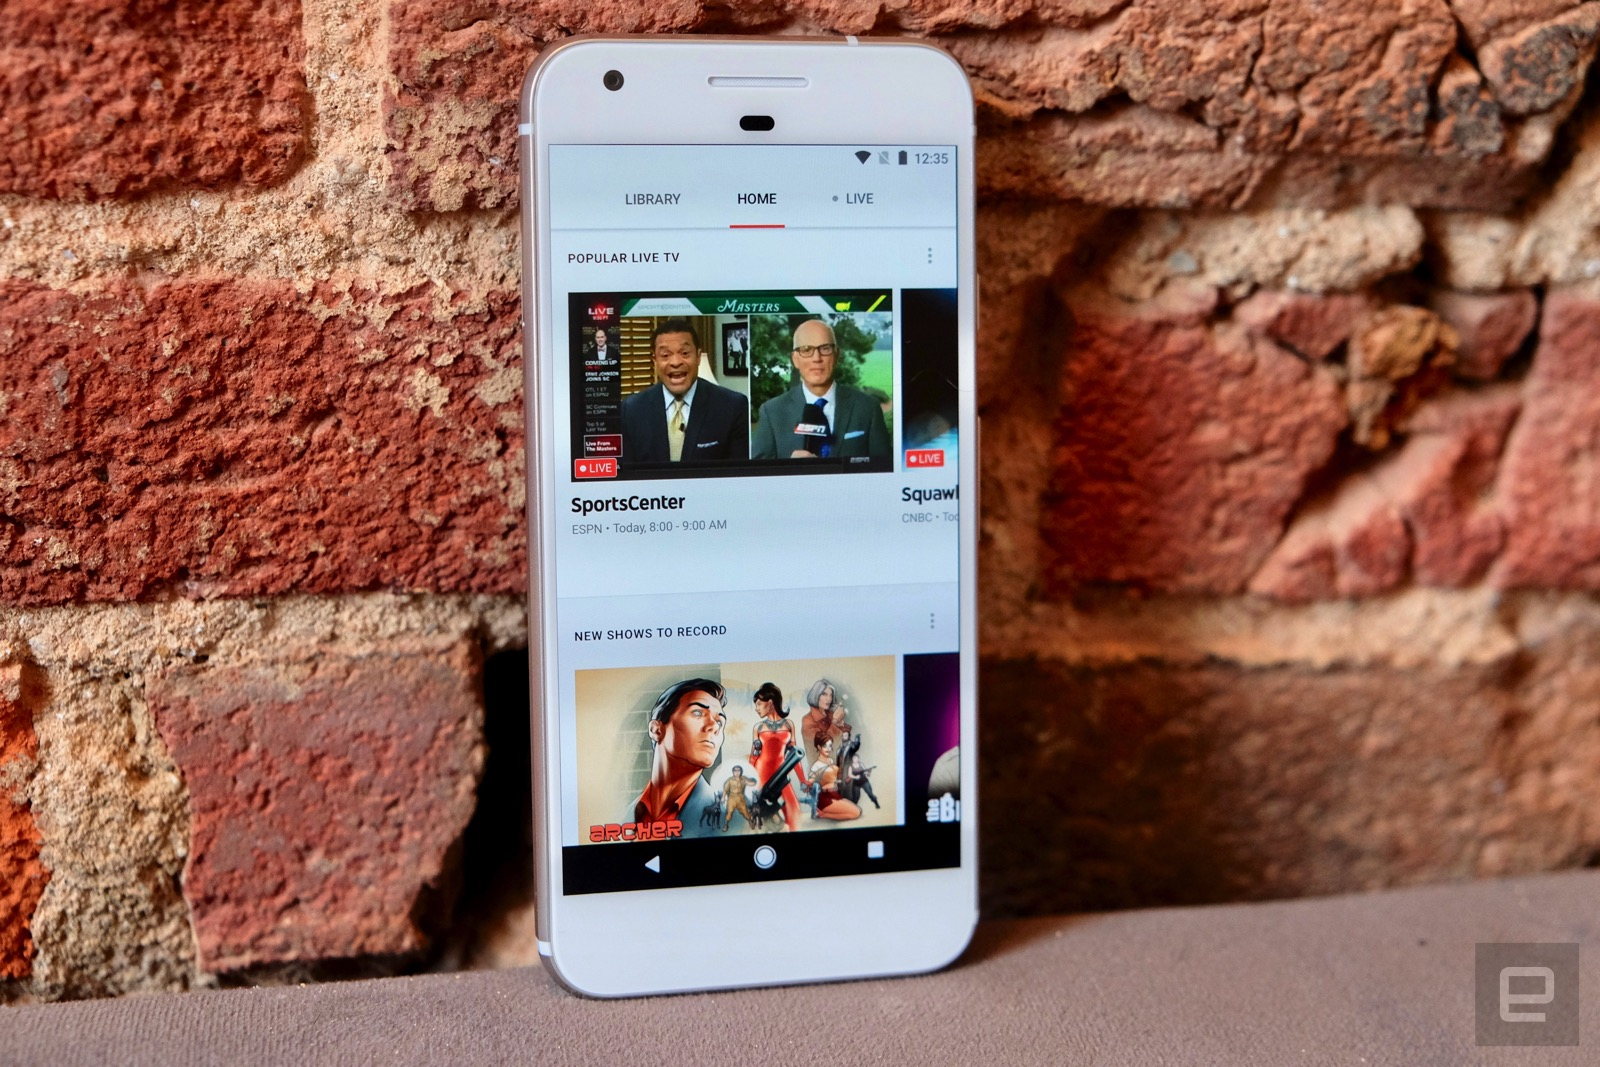 YouTube's live TV service is here